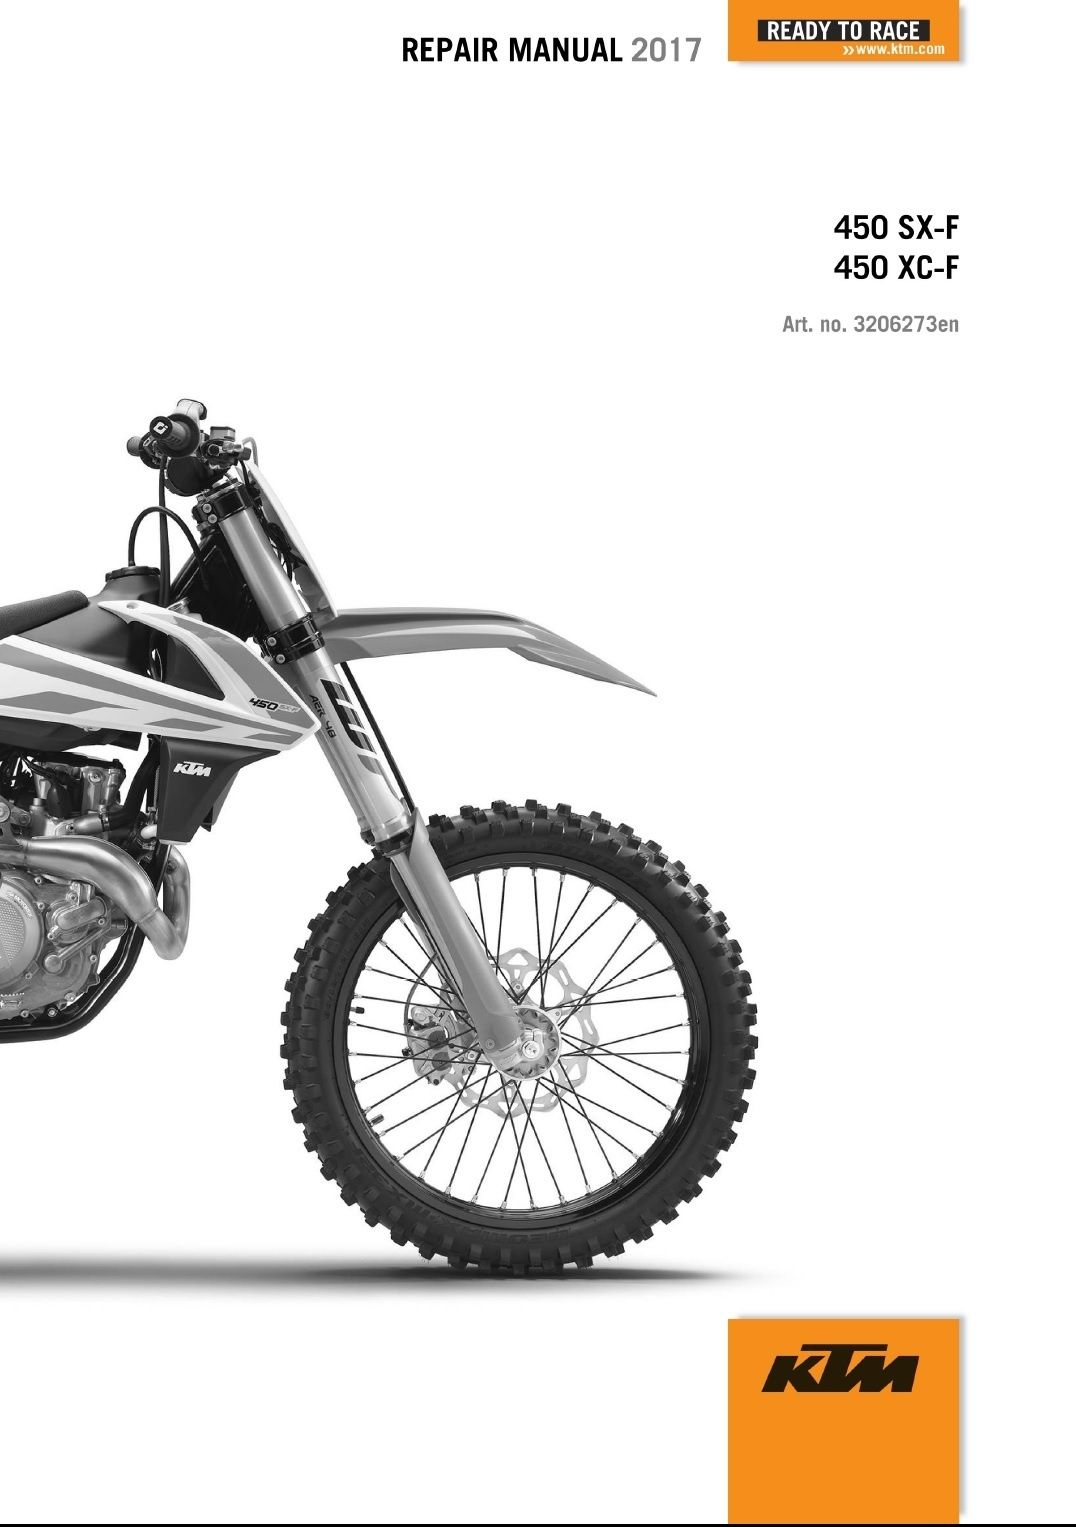 small resolution of 2014 ktm xcf 450 wiring diagram new wiring diagram ktm 250 sxf wiring diagram 2014 ktm